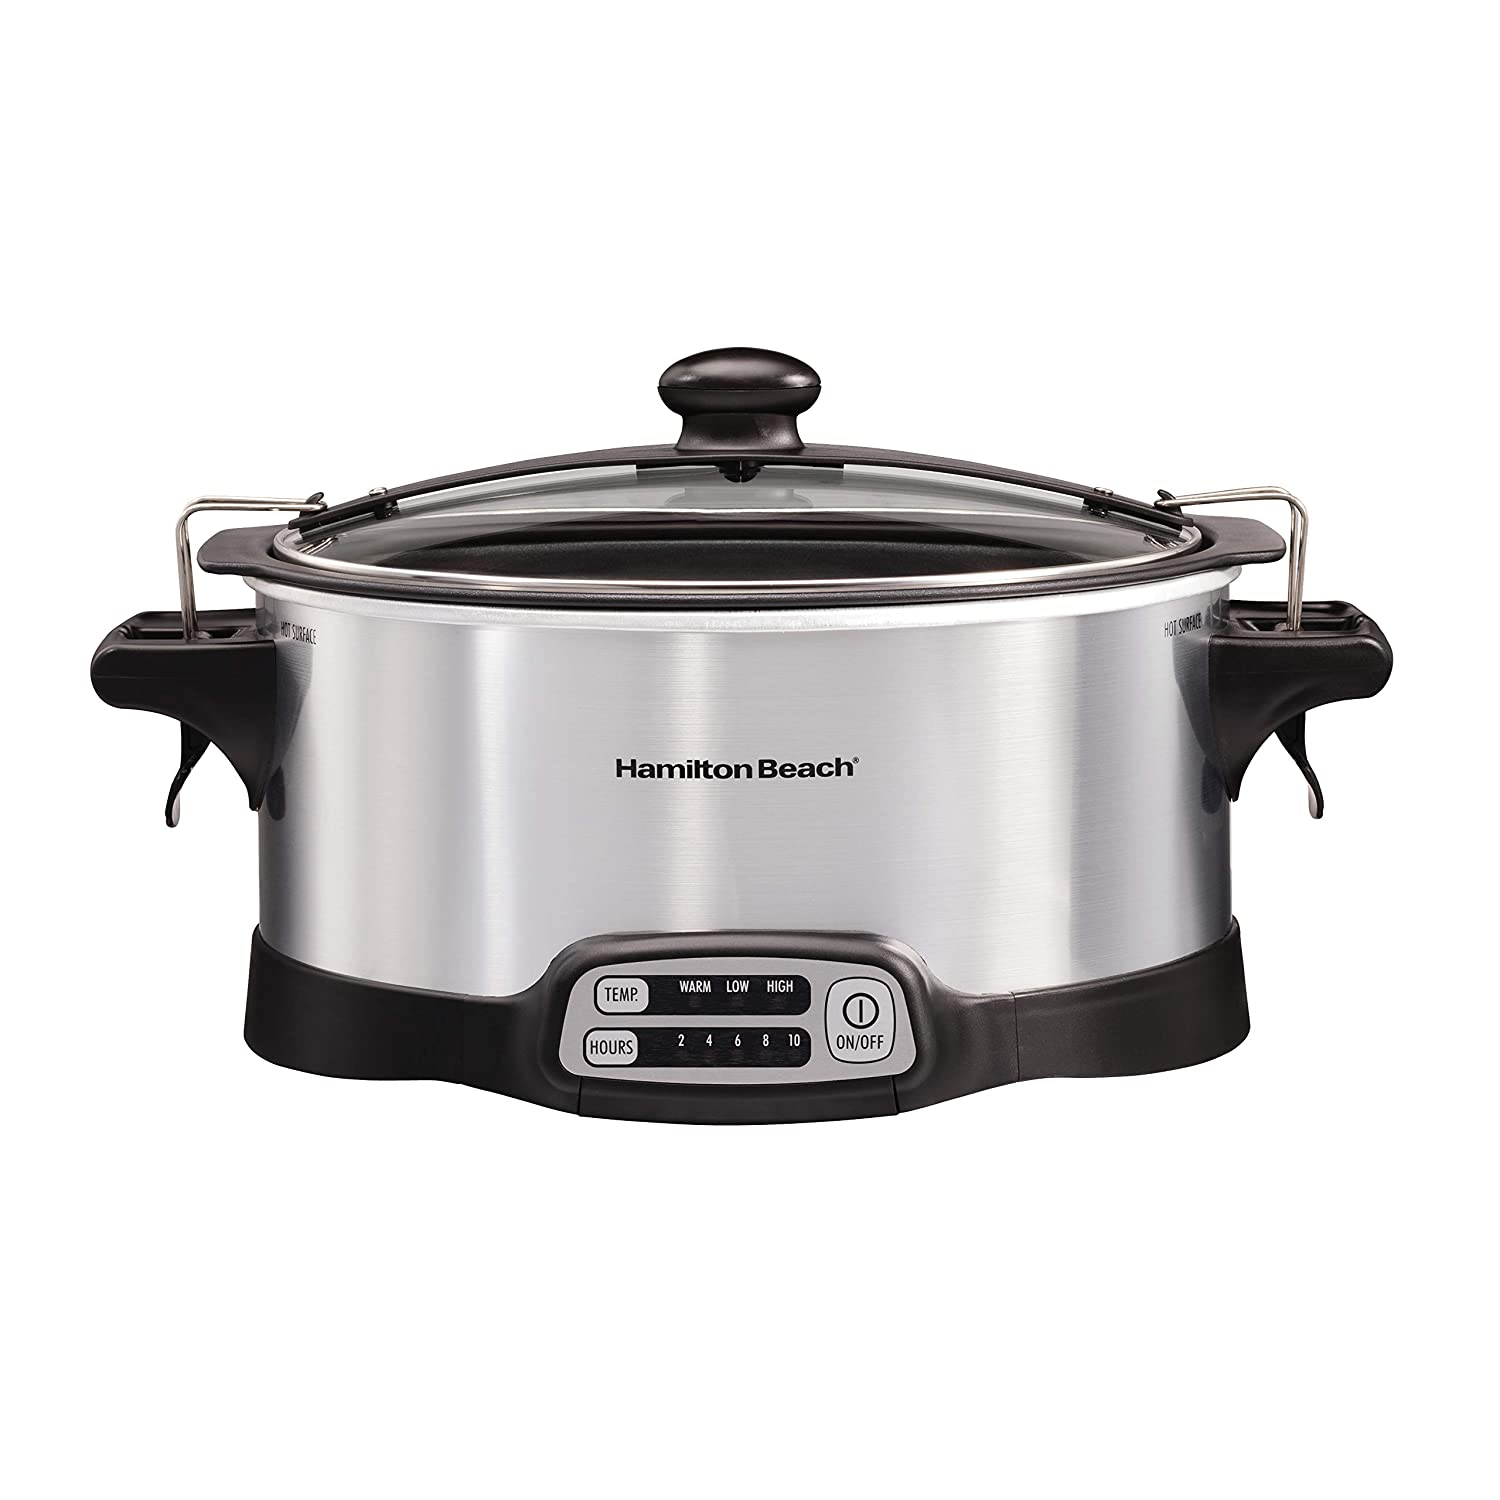 Hamilton Beach 33663 Stay or Go Stovetop Sear & Cook Slow Cooker 6 quart Capacity Stainless Steel